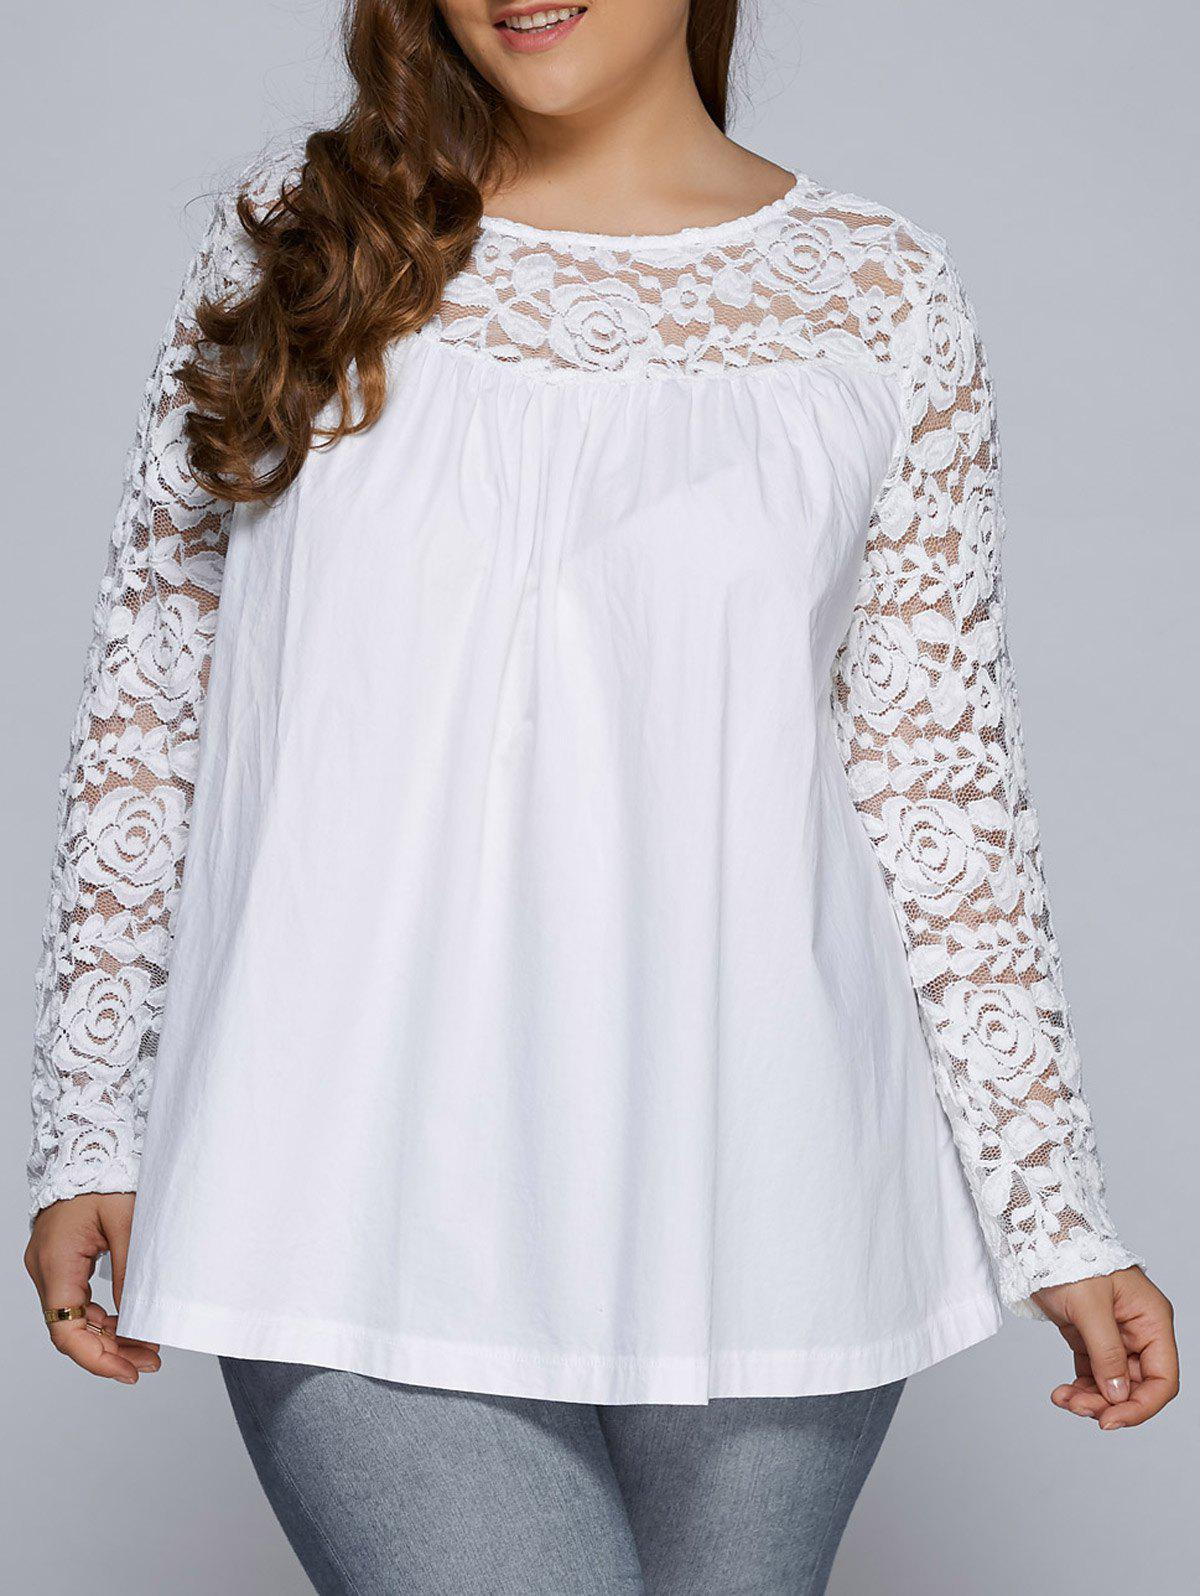 Plus Size Lace Splicing Long Sleeve BlouseWOMEN<br><br>Size: 2XL; Color: WHITE; Material: Polyester; Shirt Length: Regular; Sleeve Length: Full; Collar: Round Neck; Style: Casual; Season: Fall,Spring; Embellishment: Lace; Pattern Type: Floral; Weight: 0.350kg; Package Contents: 1 x Blouse;